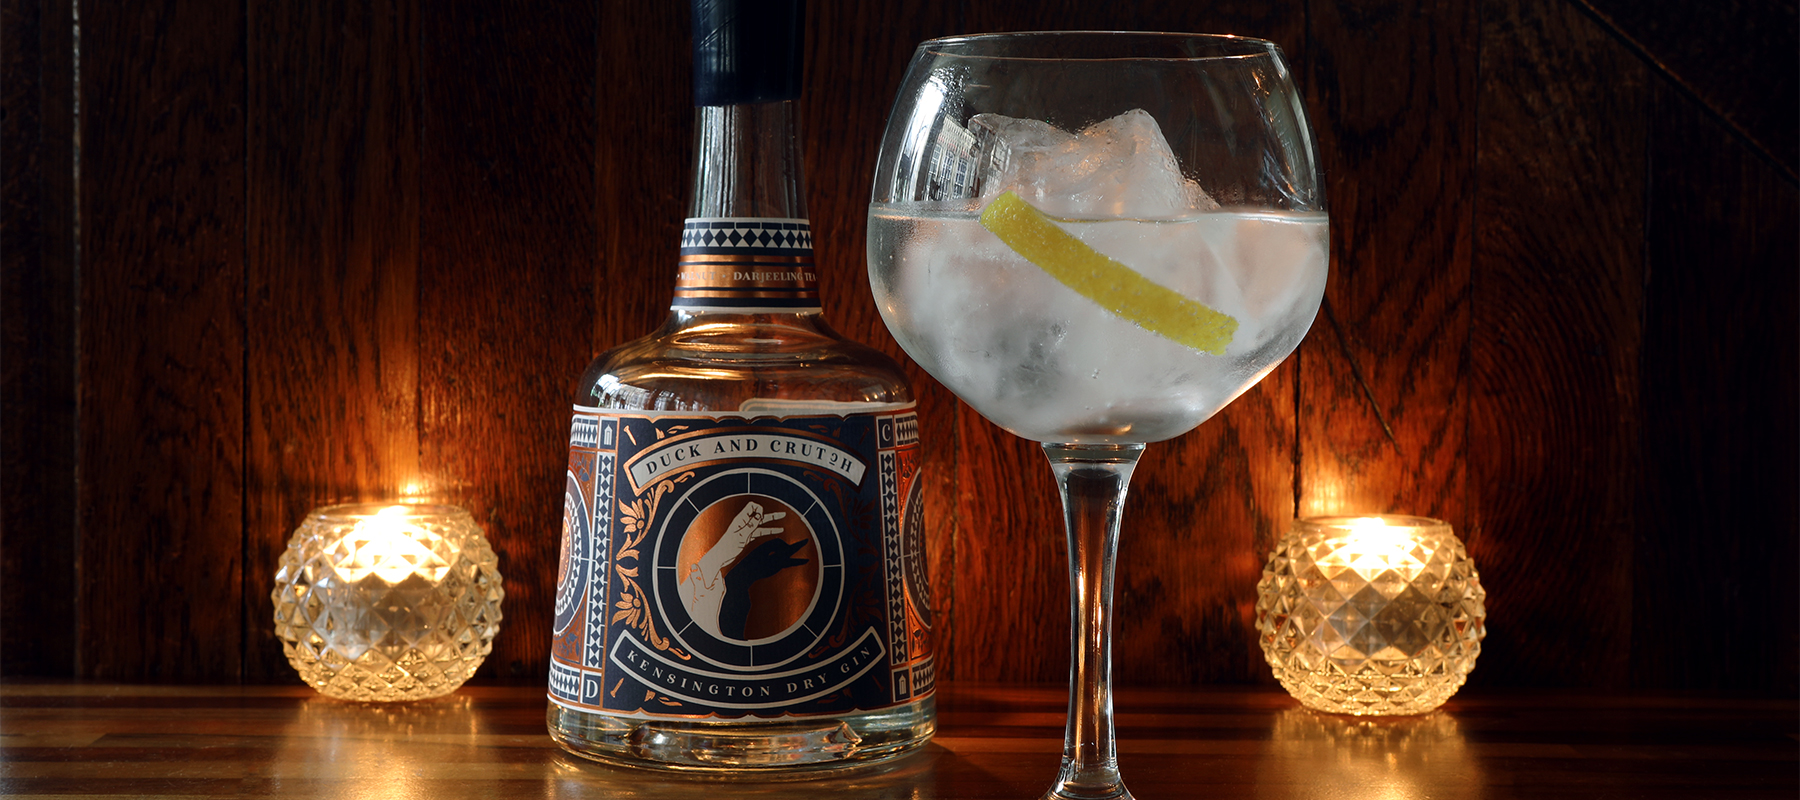 Gin Review: Duck and Crutch Kensington Dry Gin 45% abv